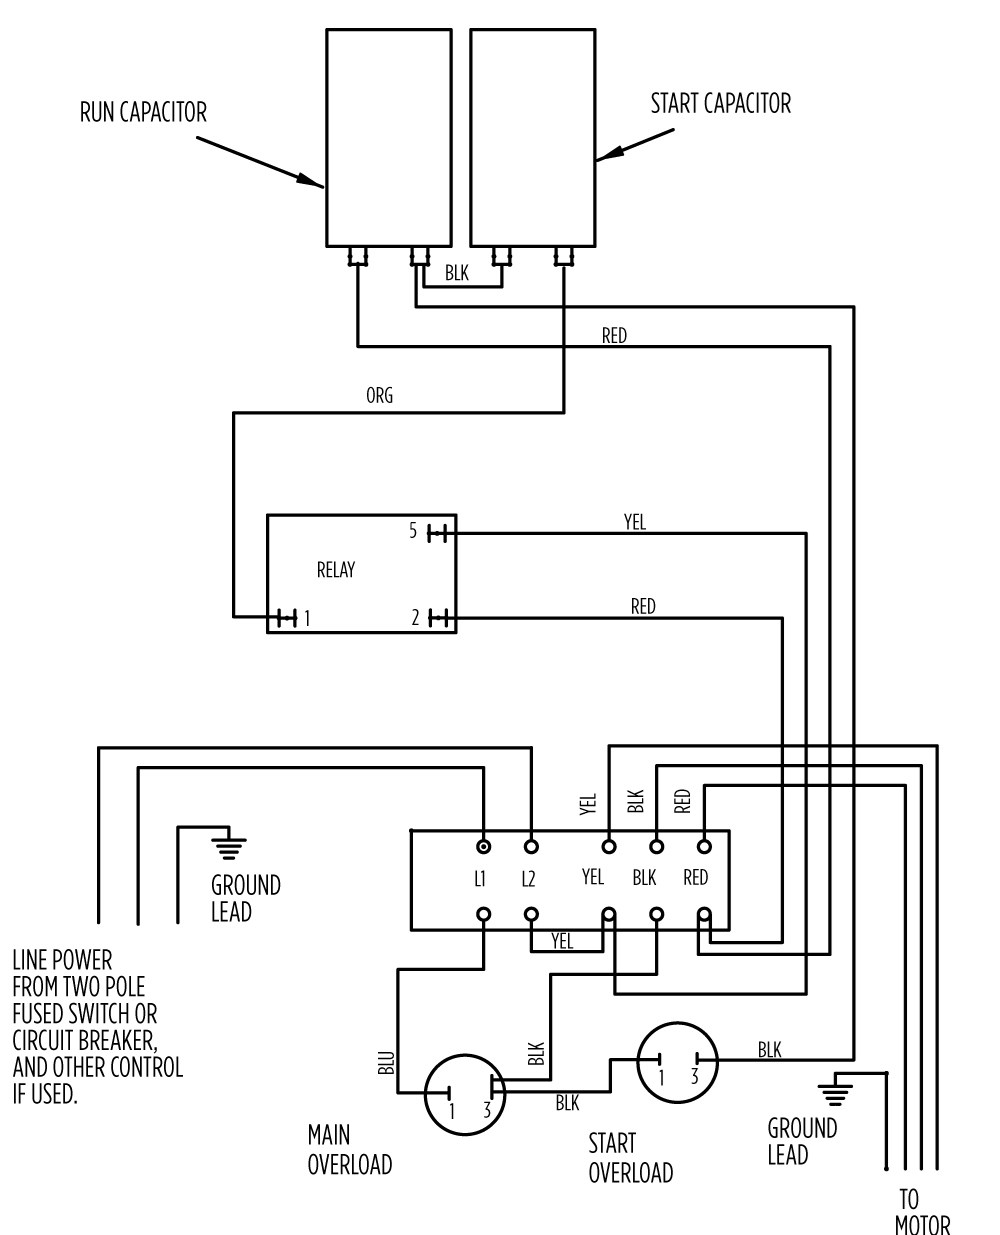 aim manual page 55 single phase motors and controls motor rh franklinwater com Hot Pressure Washer Diagrams Pressure Washer Pump Diagram